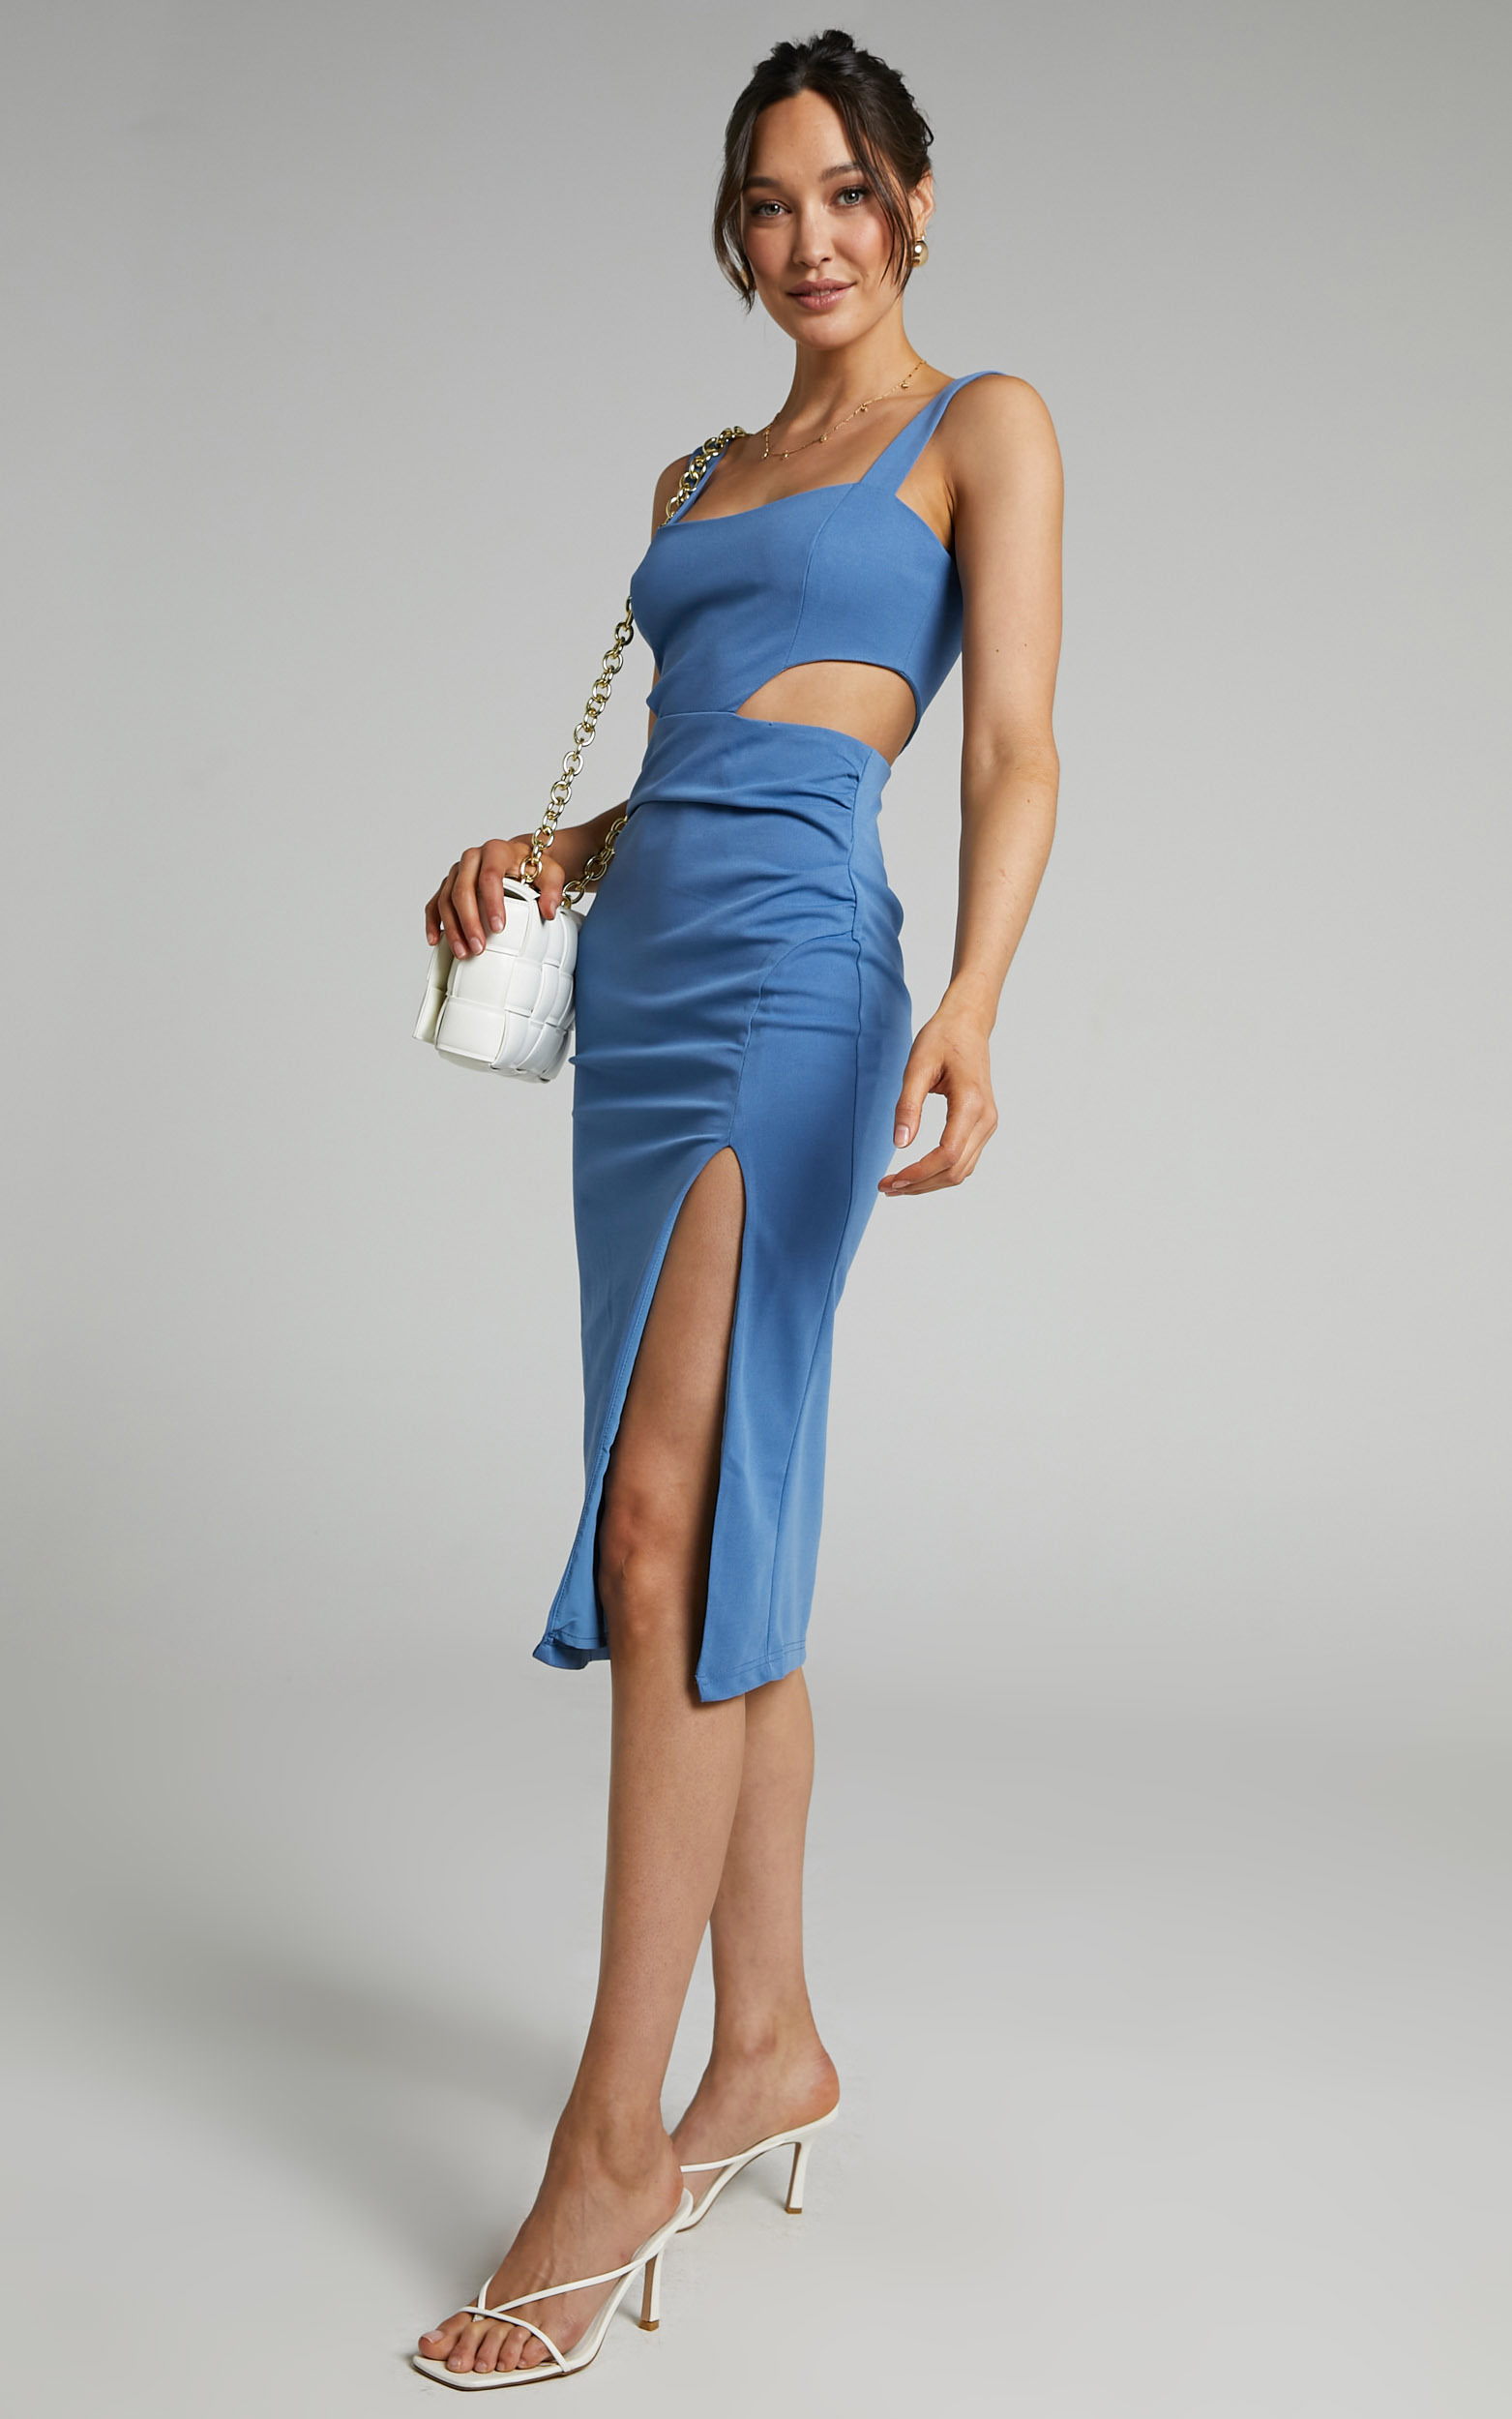 Milah Square Neck Cut Out Midi Dress in Cornflower Blue - 06, BLU2, hi-res image number null